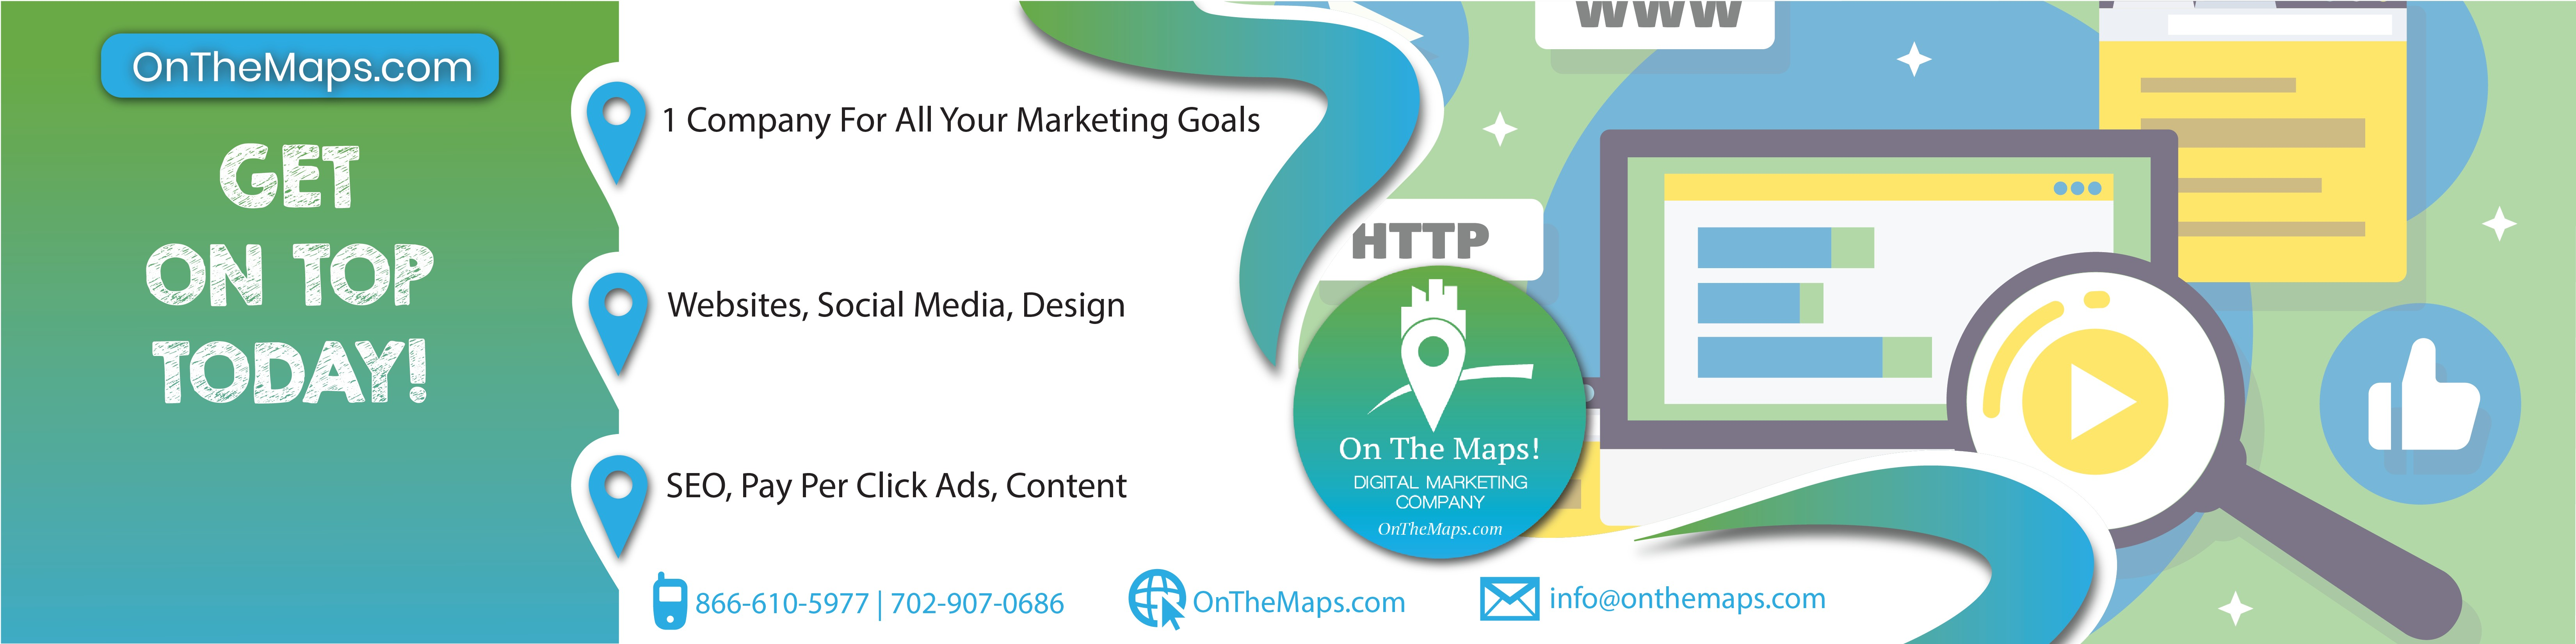 On The Maps Digital Marketing | LinkedIn